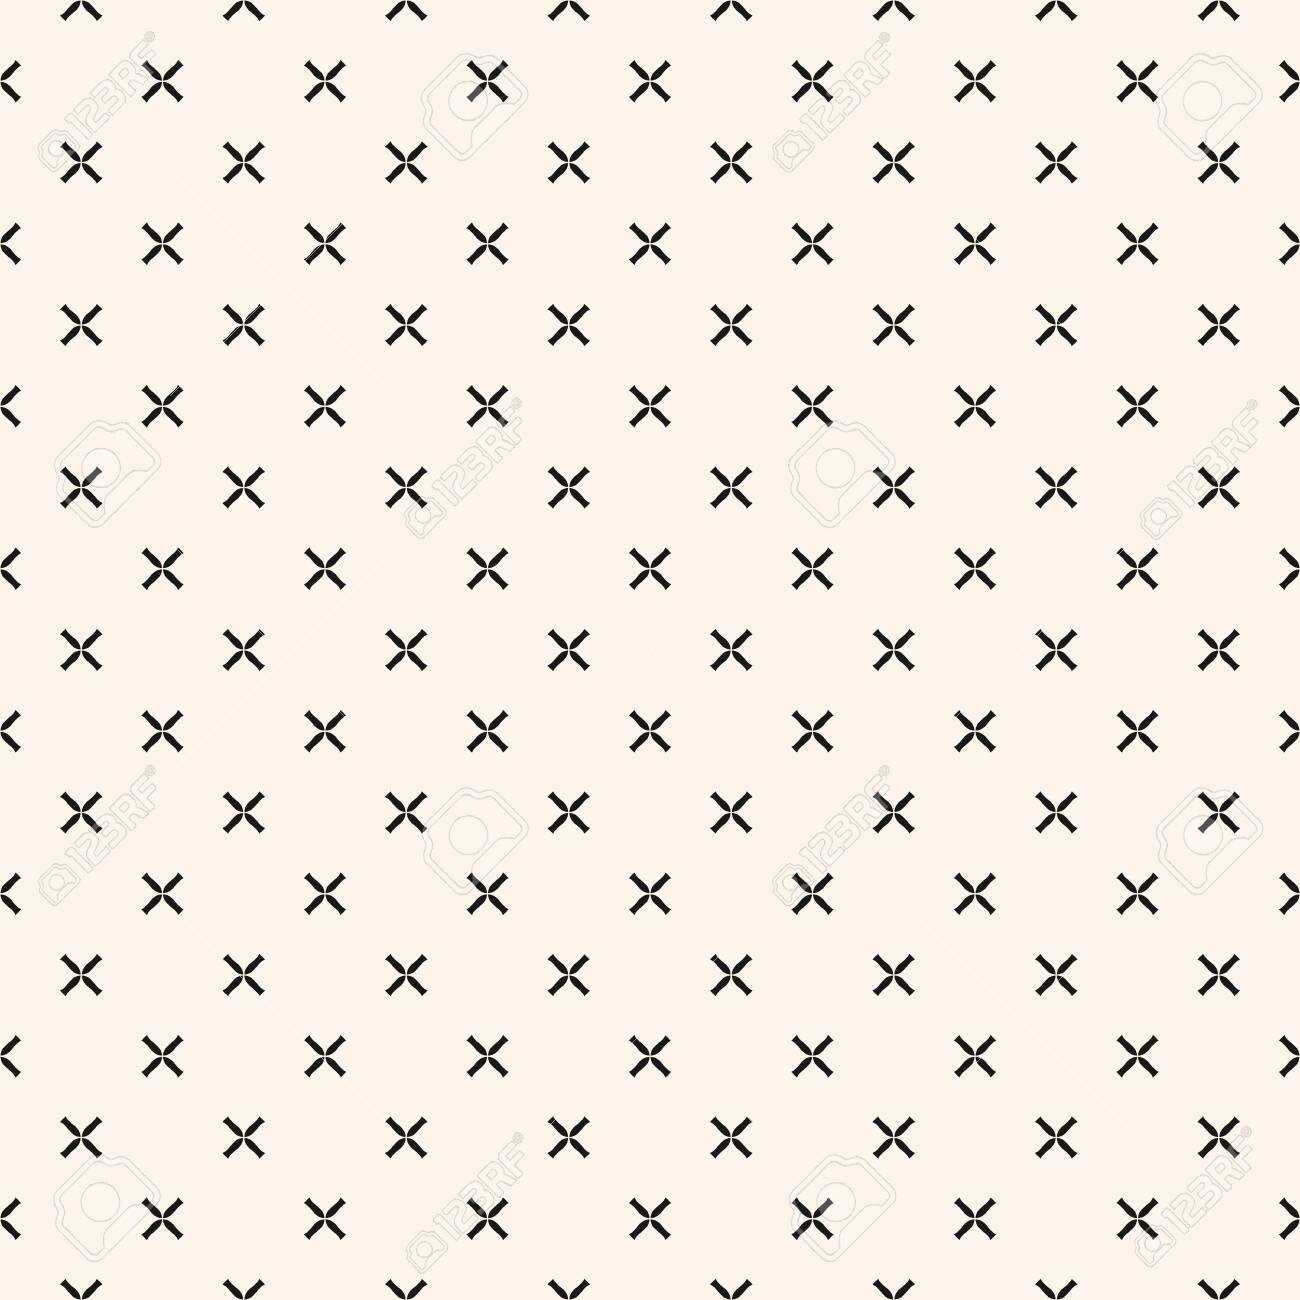 Simple Geometric Floral Pattern Black And White Minimalist